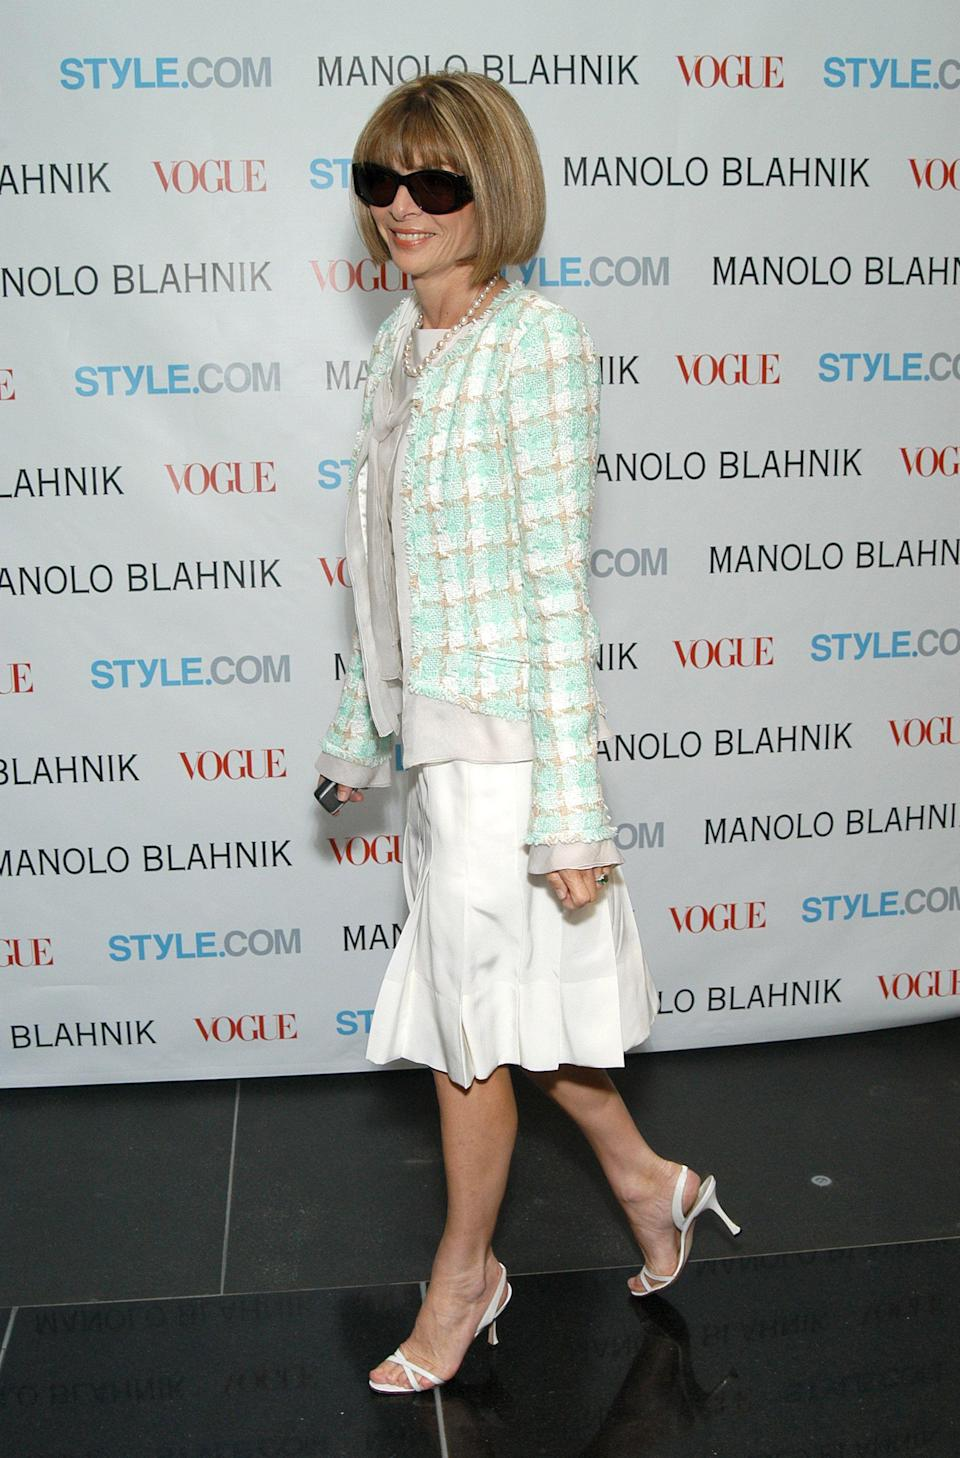 THEN: The Vogue editor in chief has been wearing the same style of neutral (Manolo Blahnik) strappy slingback sandals since the '90s. The versatile shoes will simply never go out of style.